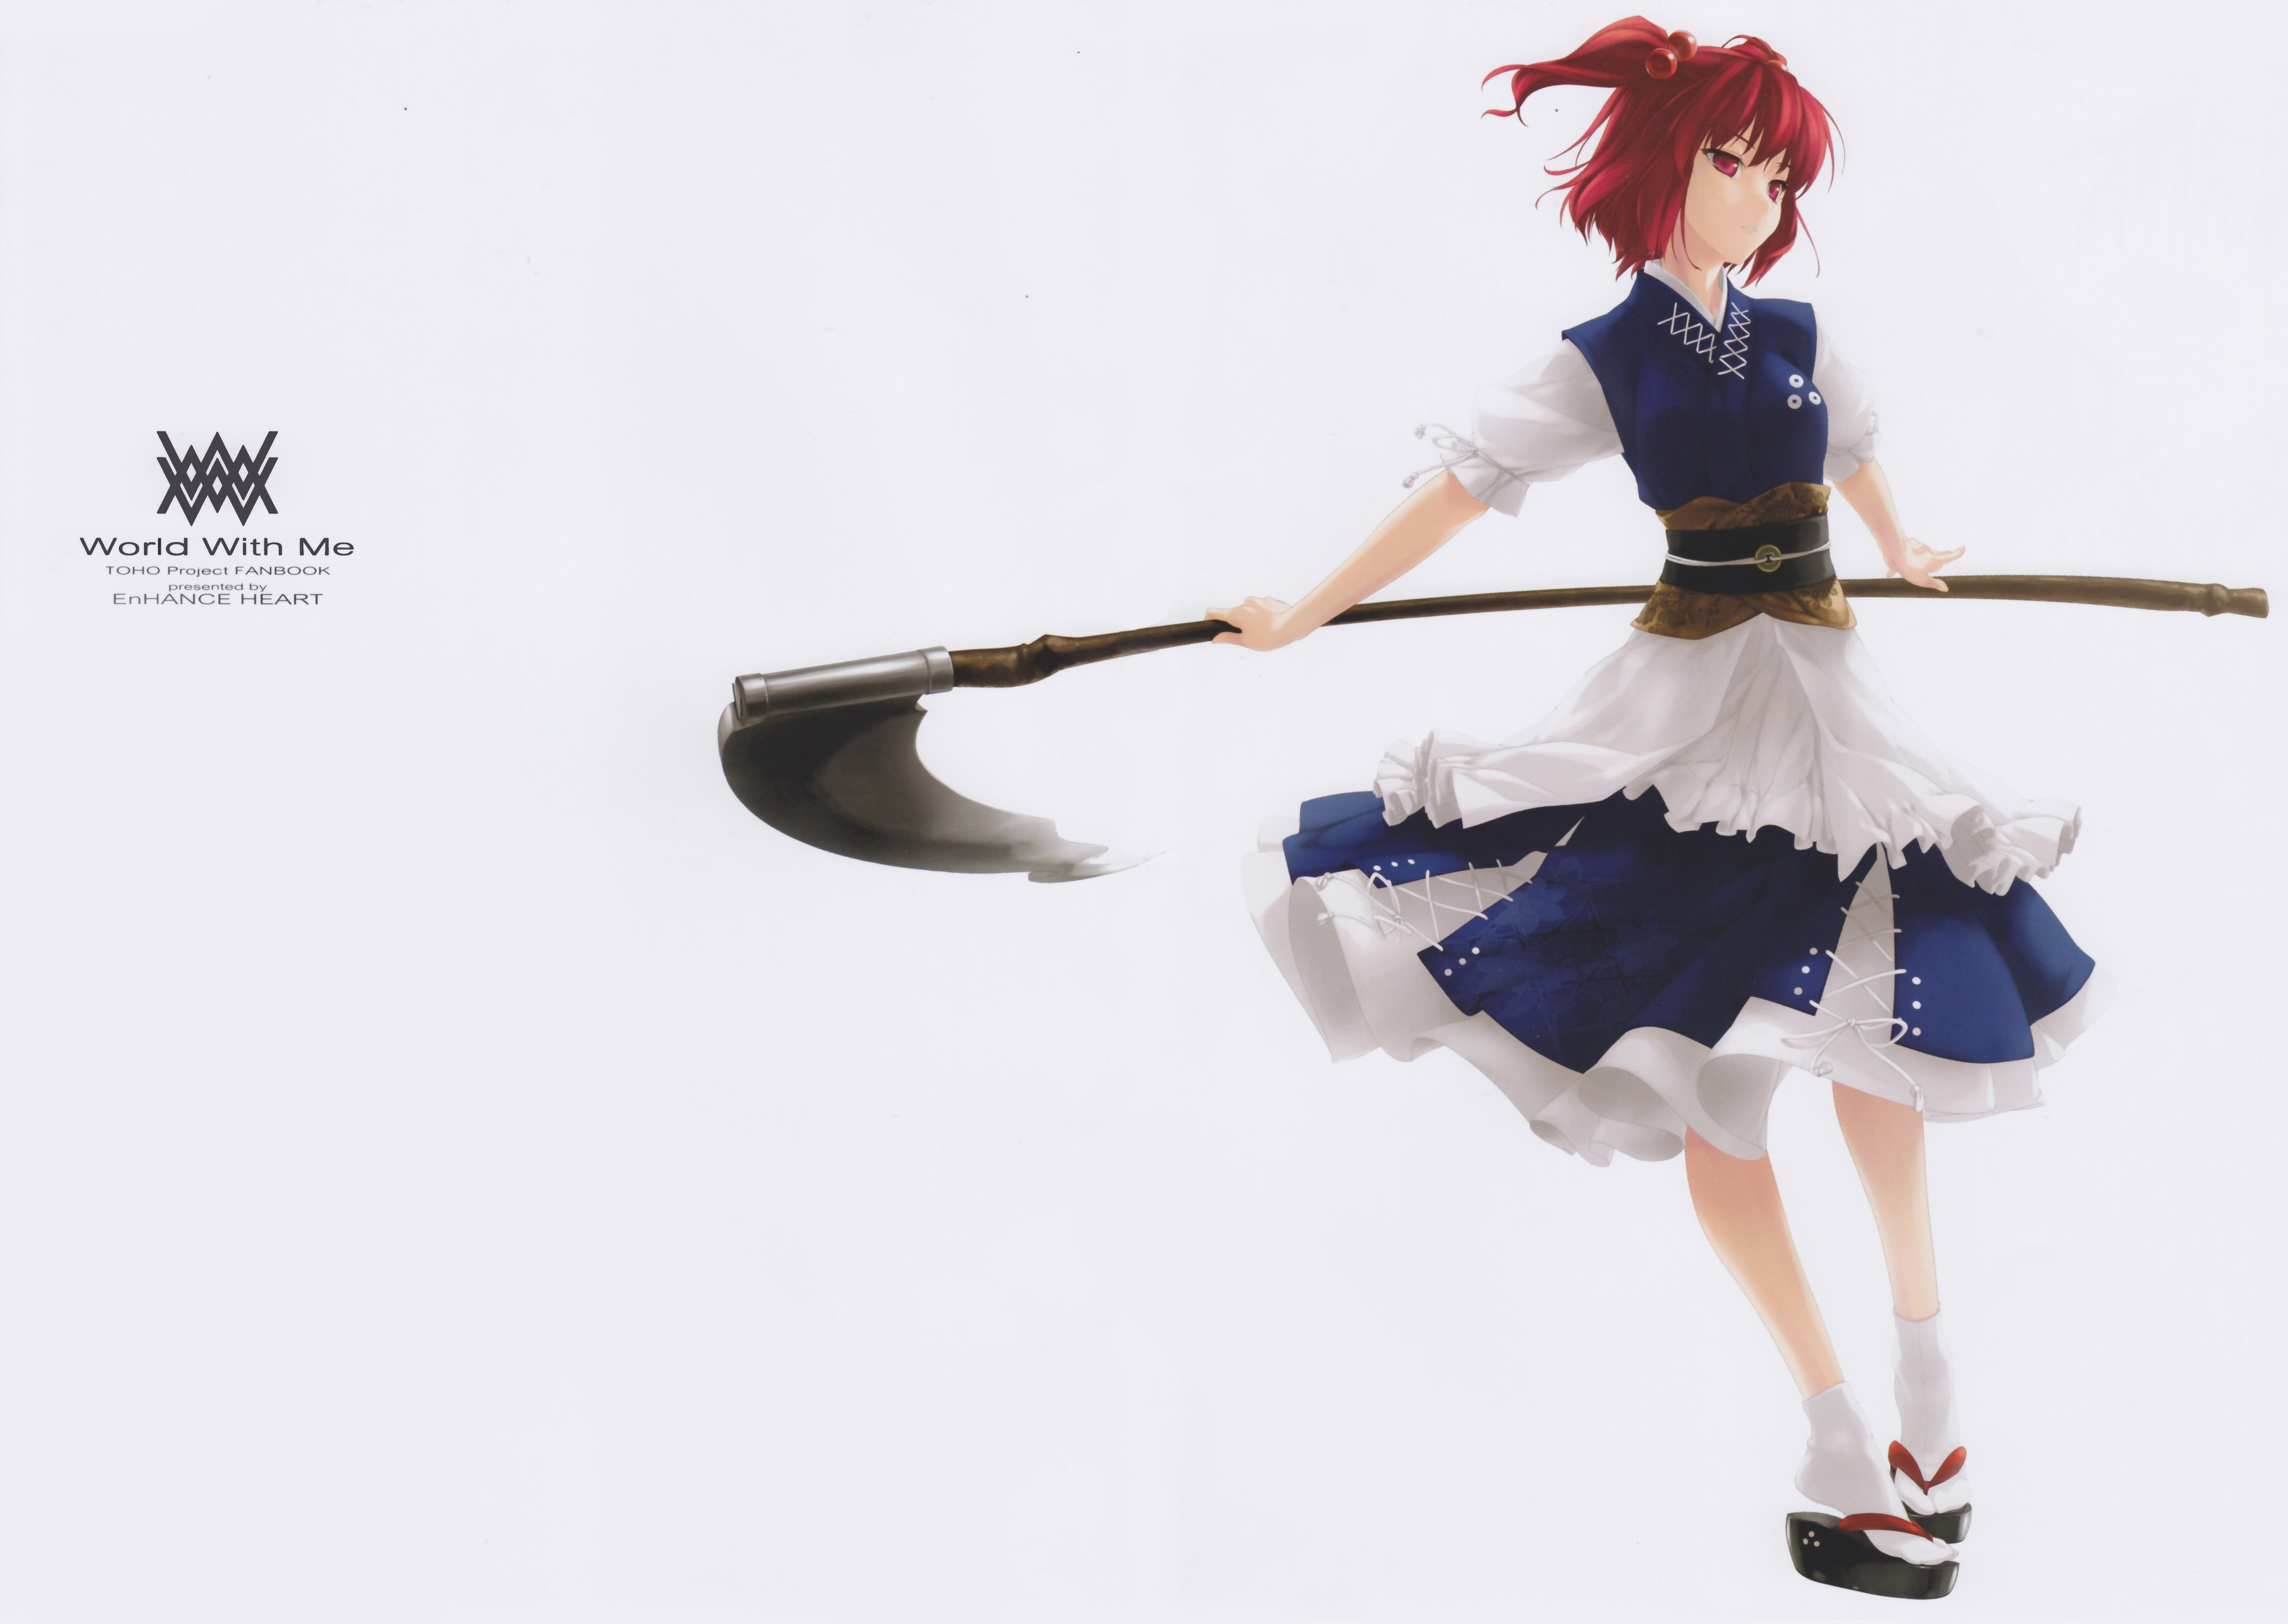 touhou text scythe redheads